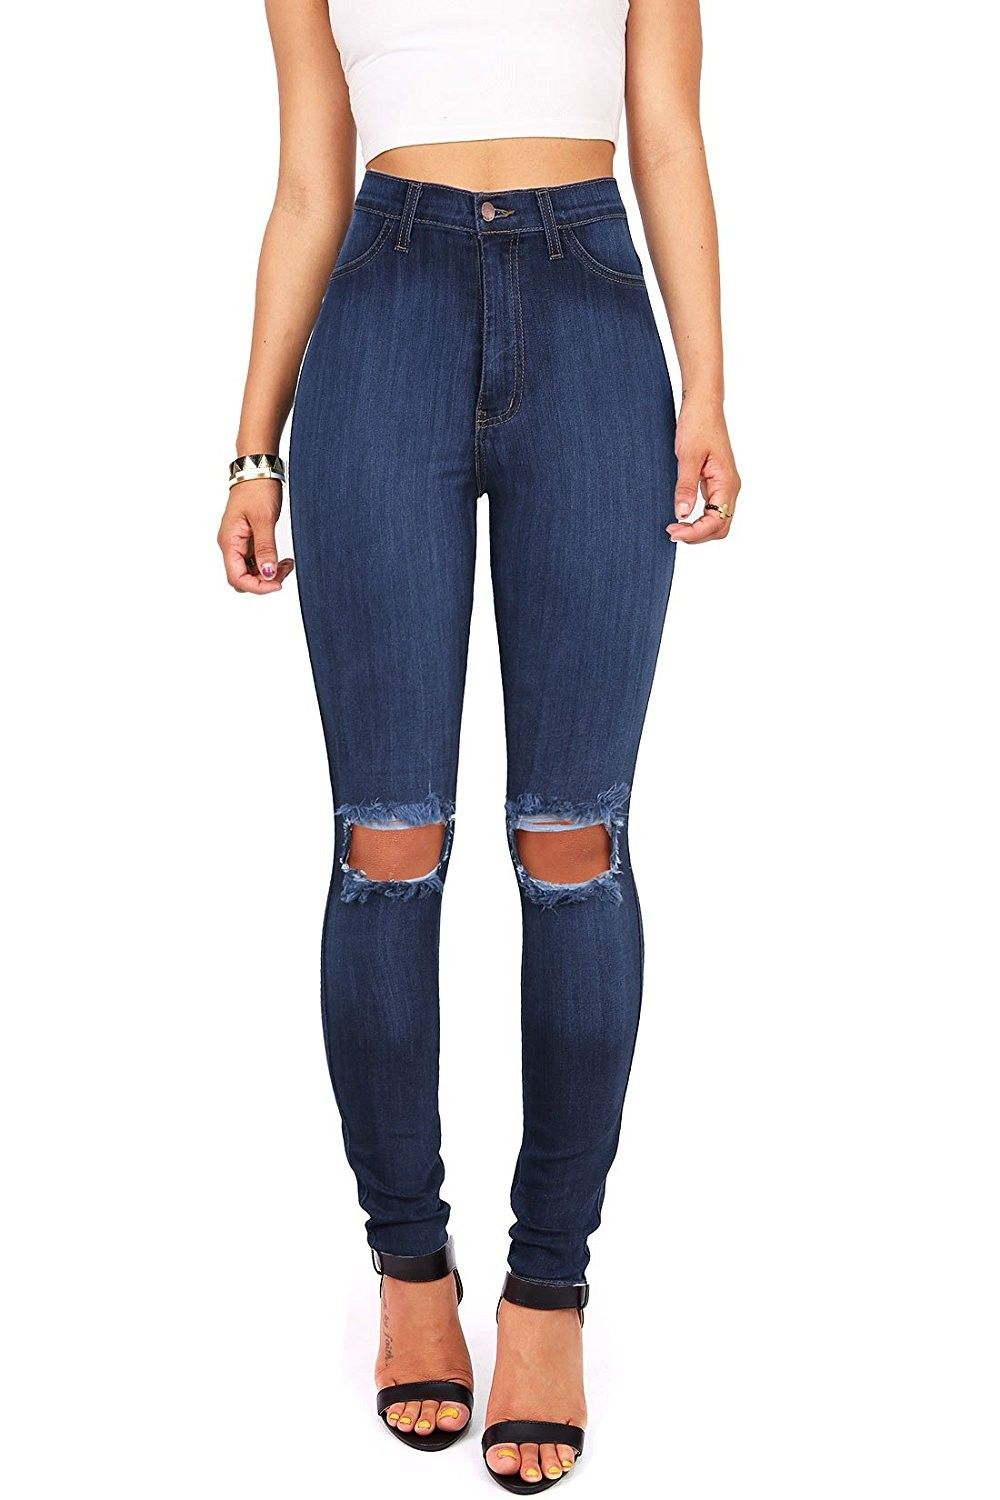 Women's High Rise Jogger Jeans Wild Fable™ Light Wash